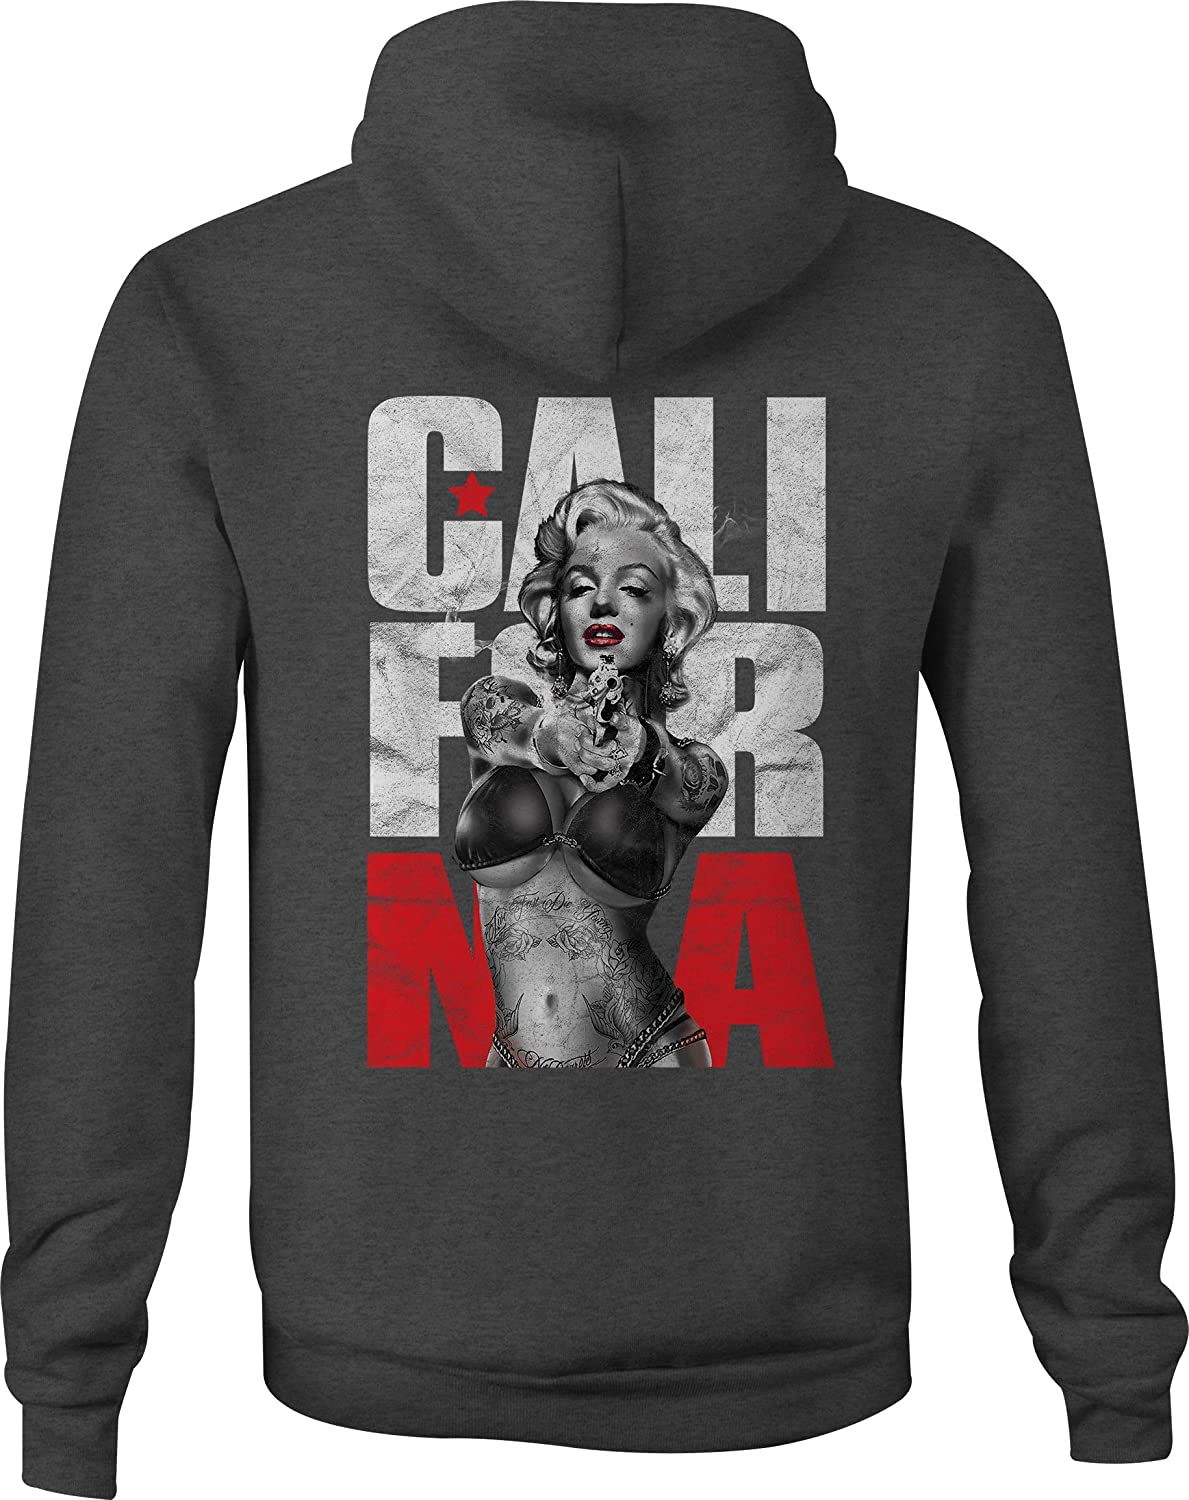 Zip Up Hoodie California Marilyn Tattoos Hooded Sweatshirt for Men